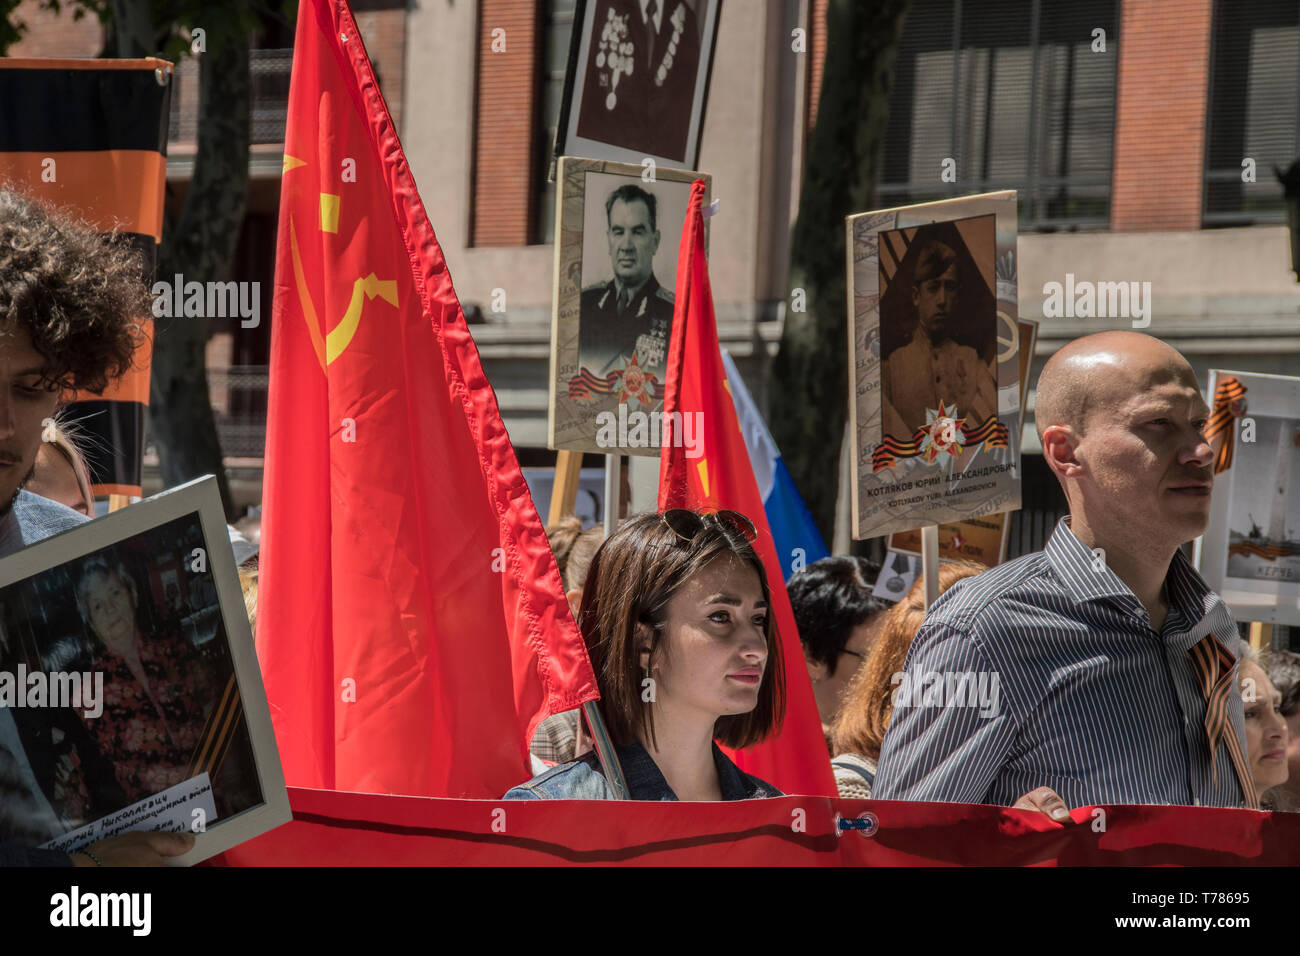 People seen with a flag of Soviet Union in the celebration of world war II, in prado avenue in Madrid, Spain. celebration of the Soviet Union in its v - Stock Image